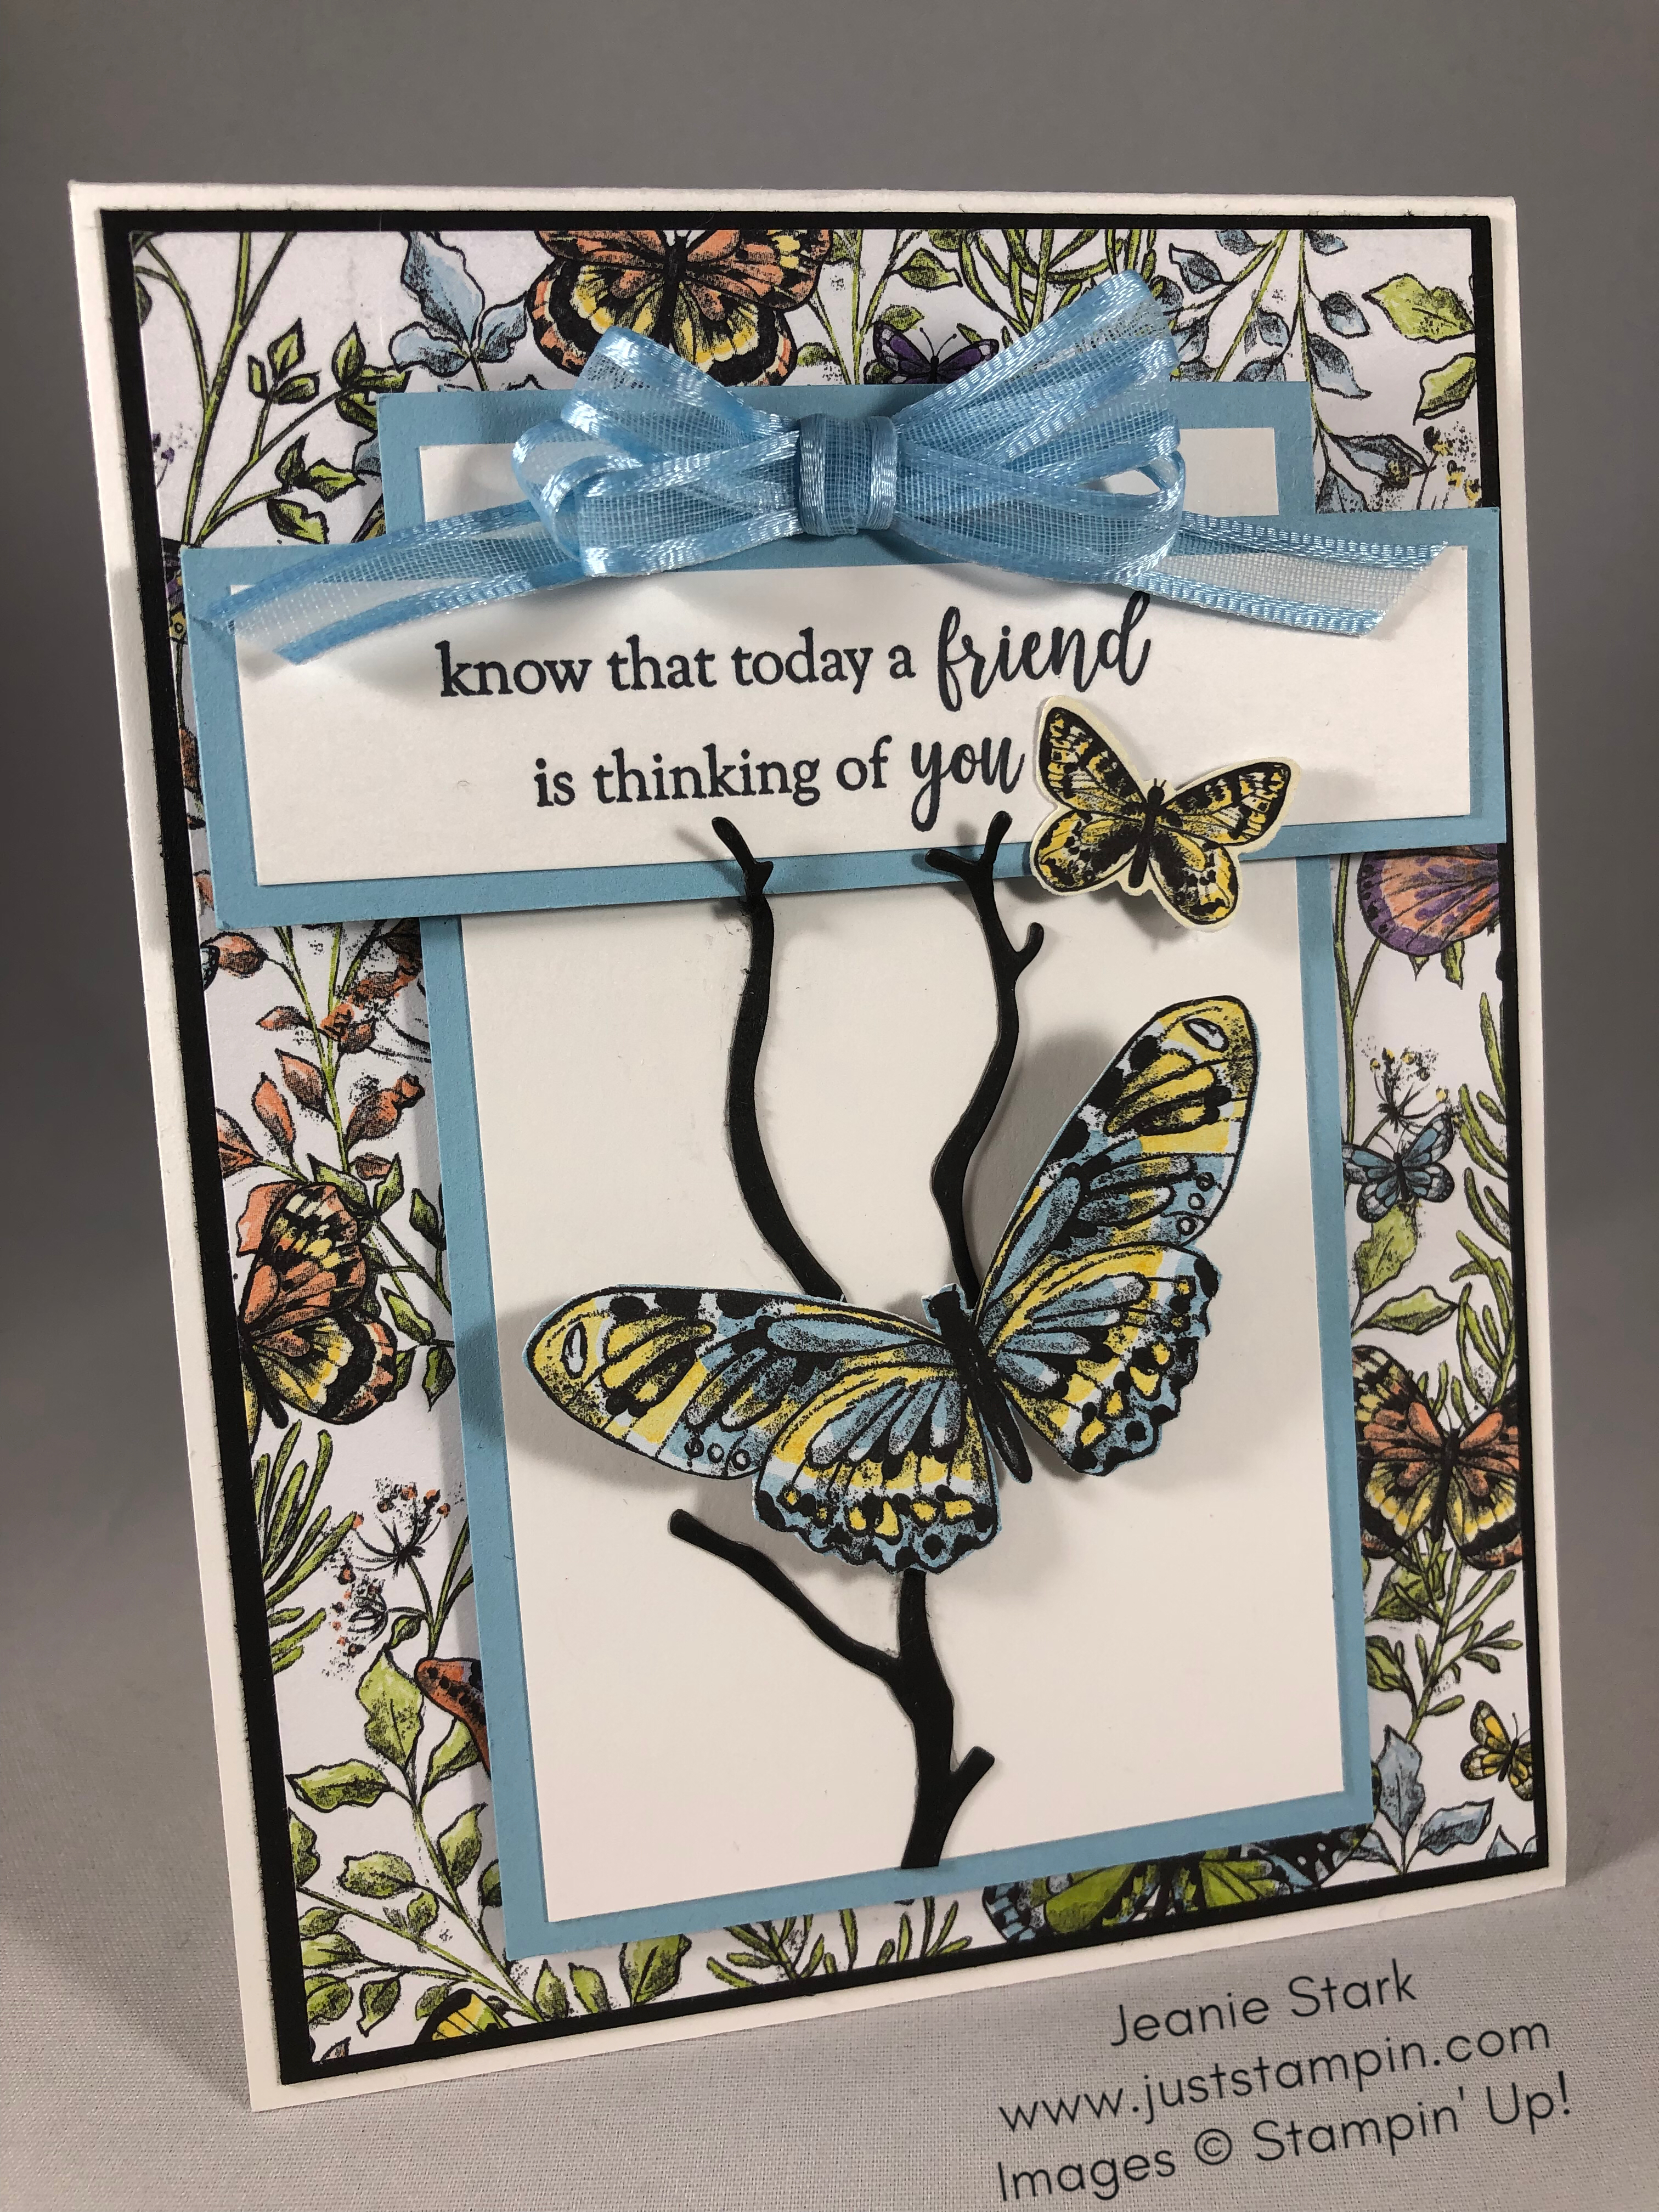 Stampin Up friend card idea using Botanical Butterfly Designer Series Paper and Part of My Story Stamp Set - Jeanie Stark StampinUp